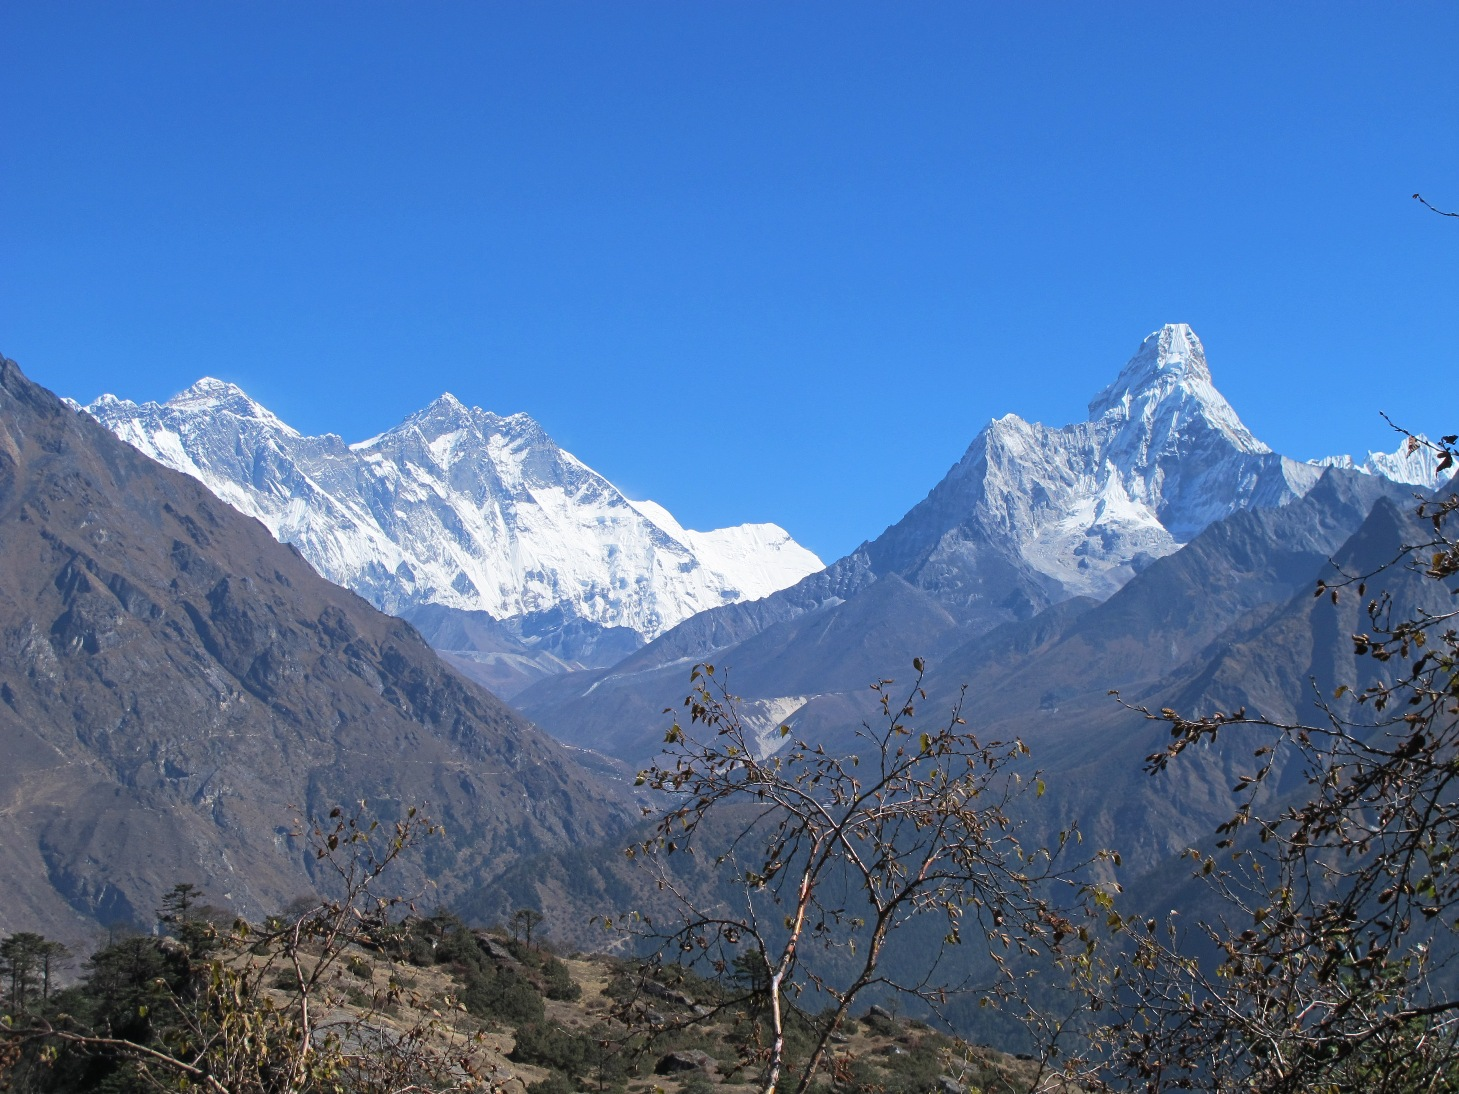 Vistas al Ama Dablam y Everest desde el Hotel Everest View